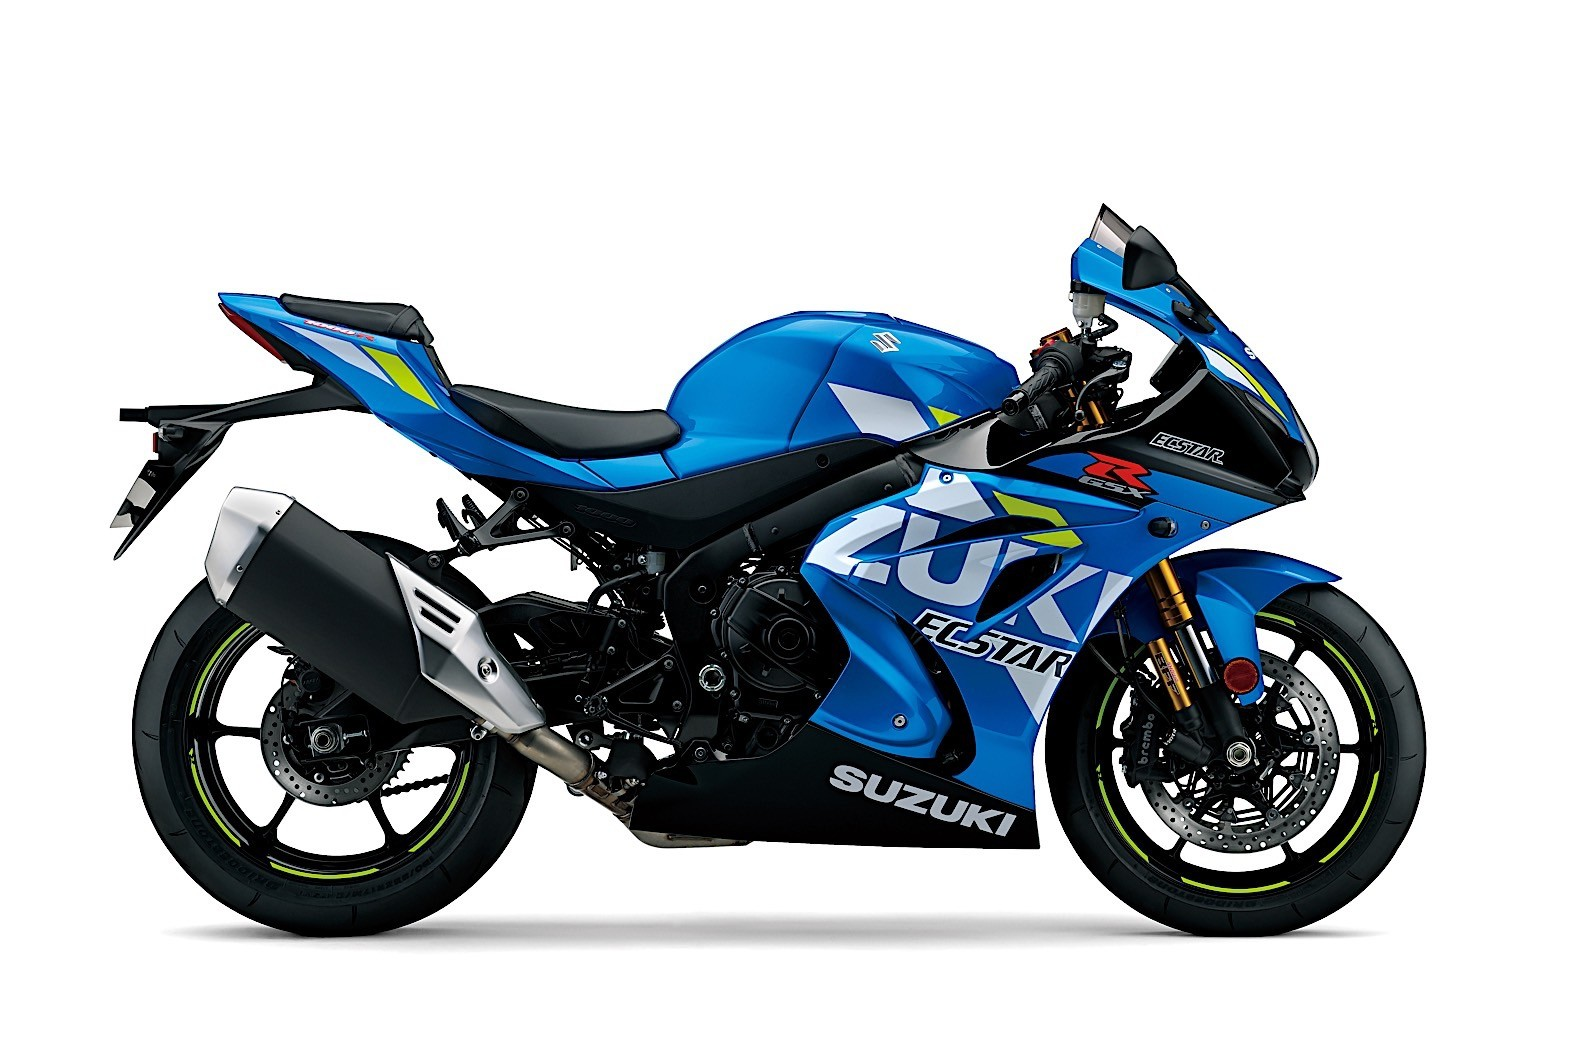 2019 Suzuki Motorcycles Shine in New Colors at the